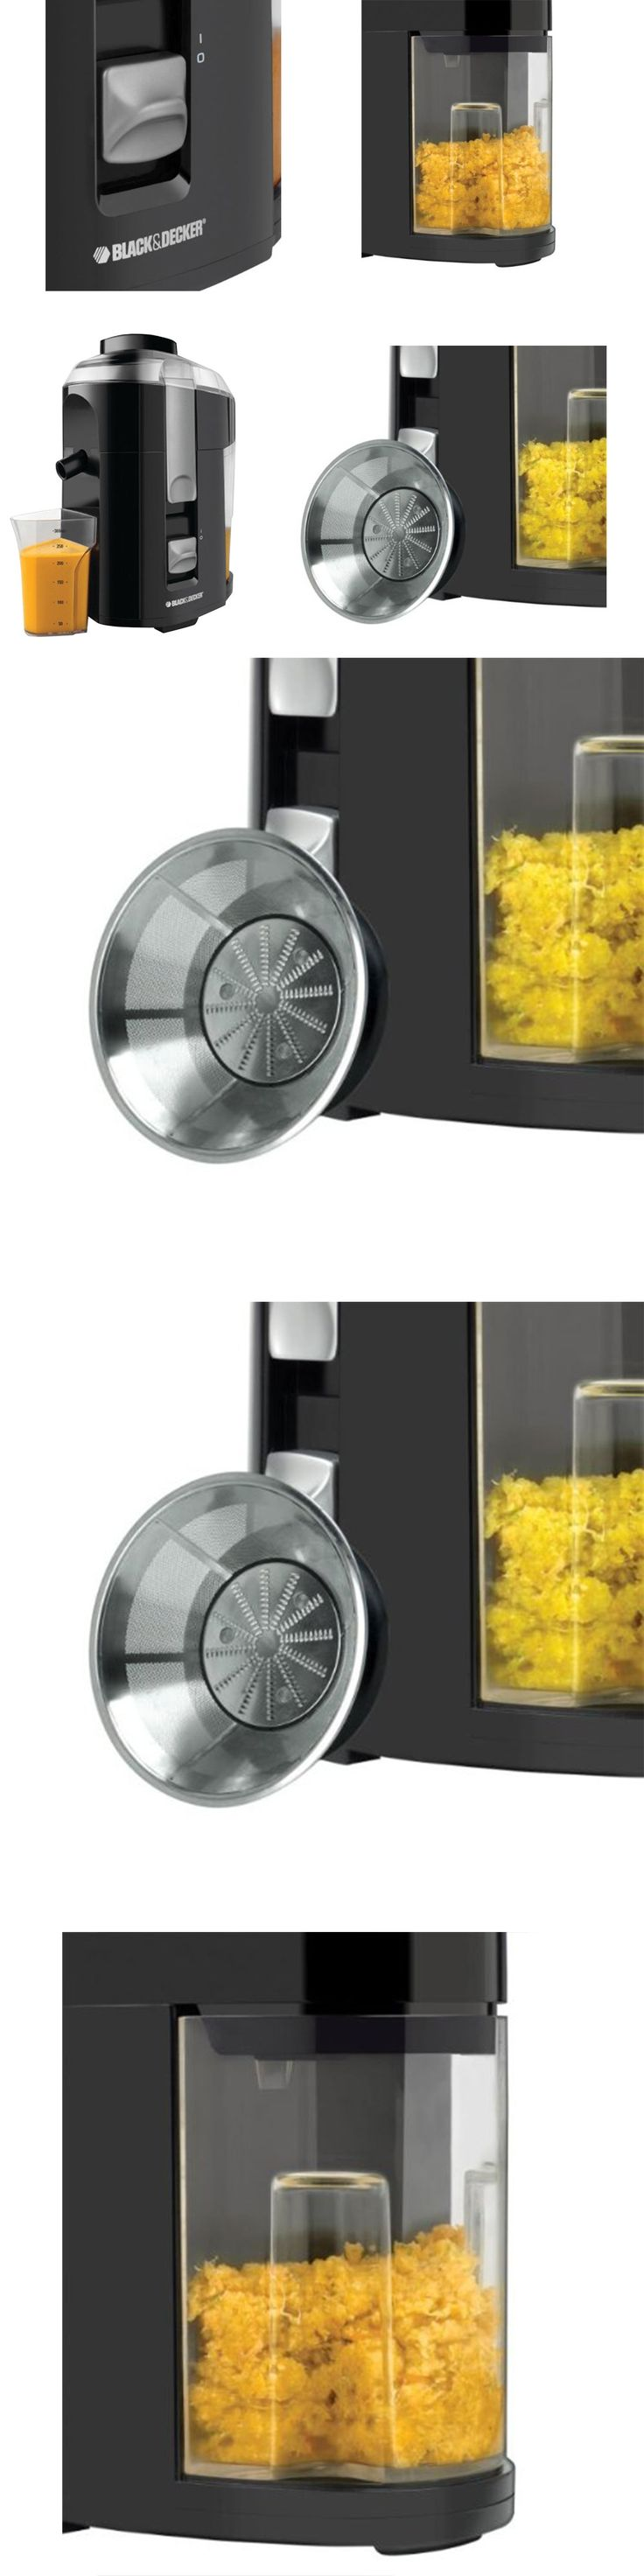 appliances: Fruit Juicer Extractor Machine Electric Vegetable Maker Juice Cup Blender New BUY IT NOW ONLY: $43.5